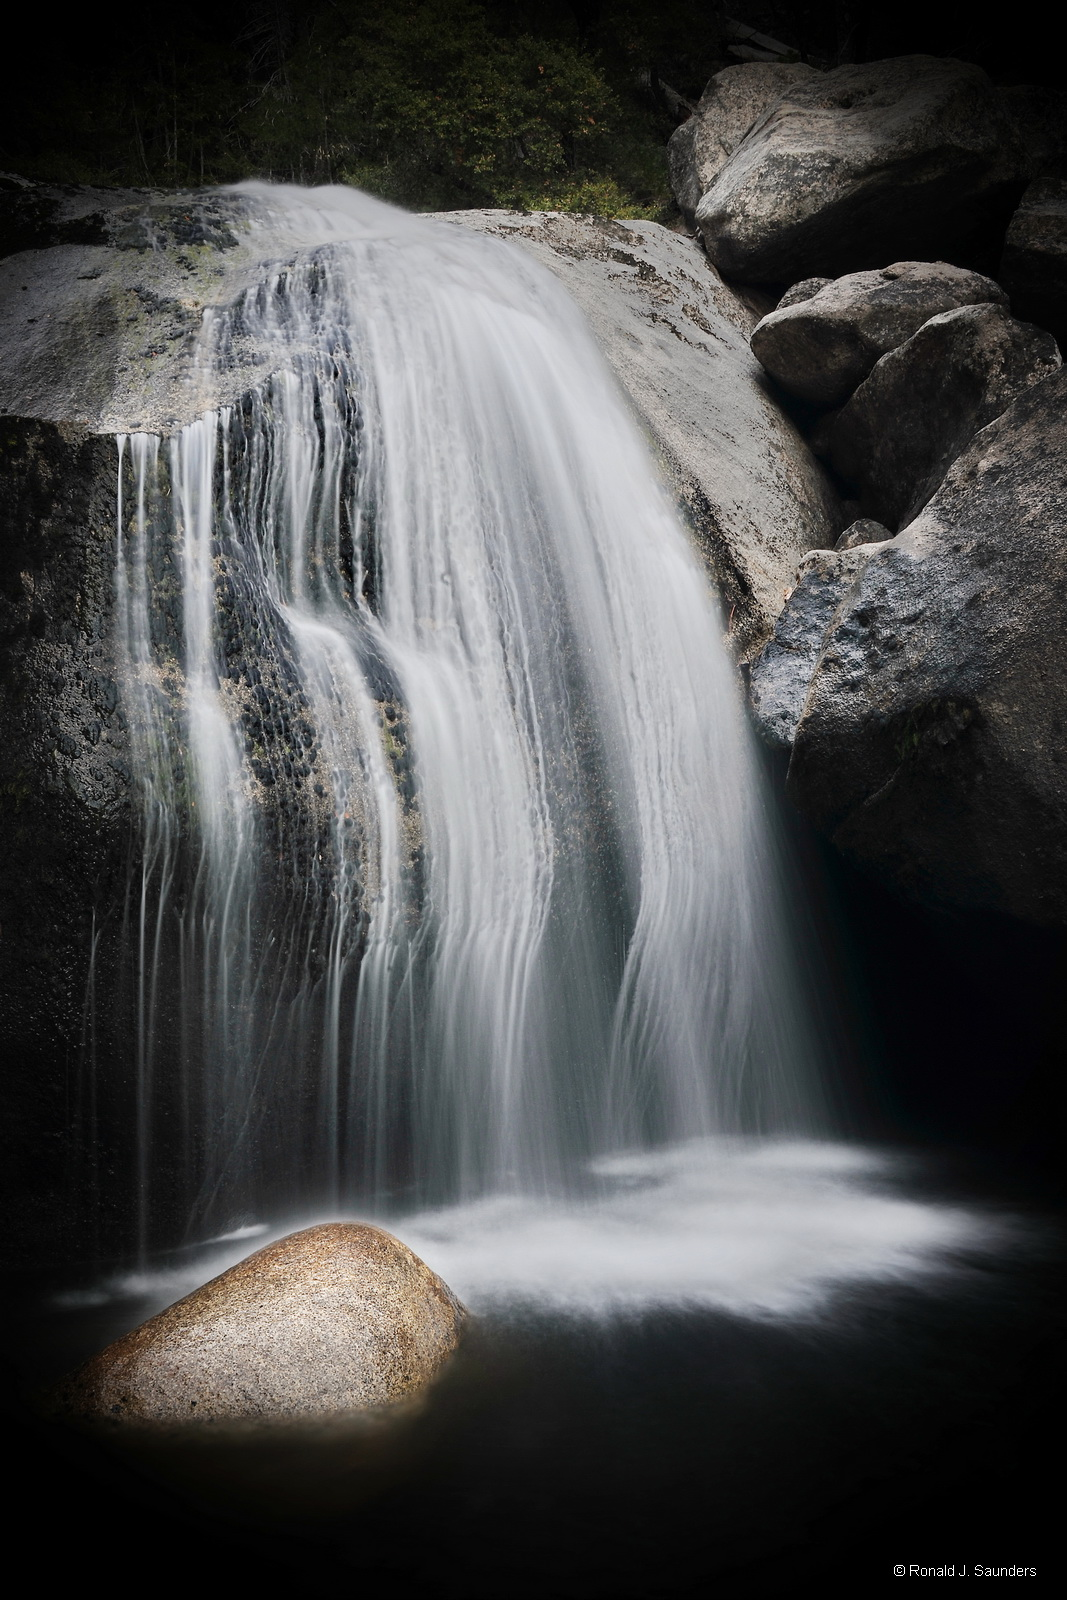 ronald, saunders, digital, photography, image, ronald, falls, davis, creek, yosemite, water, sream, creek, photo